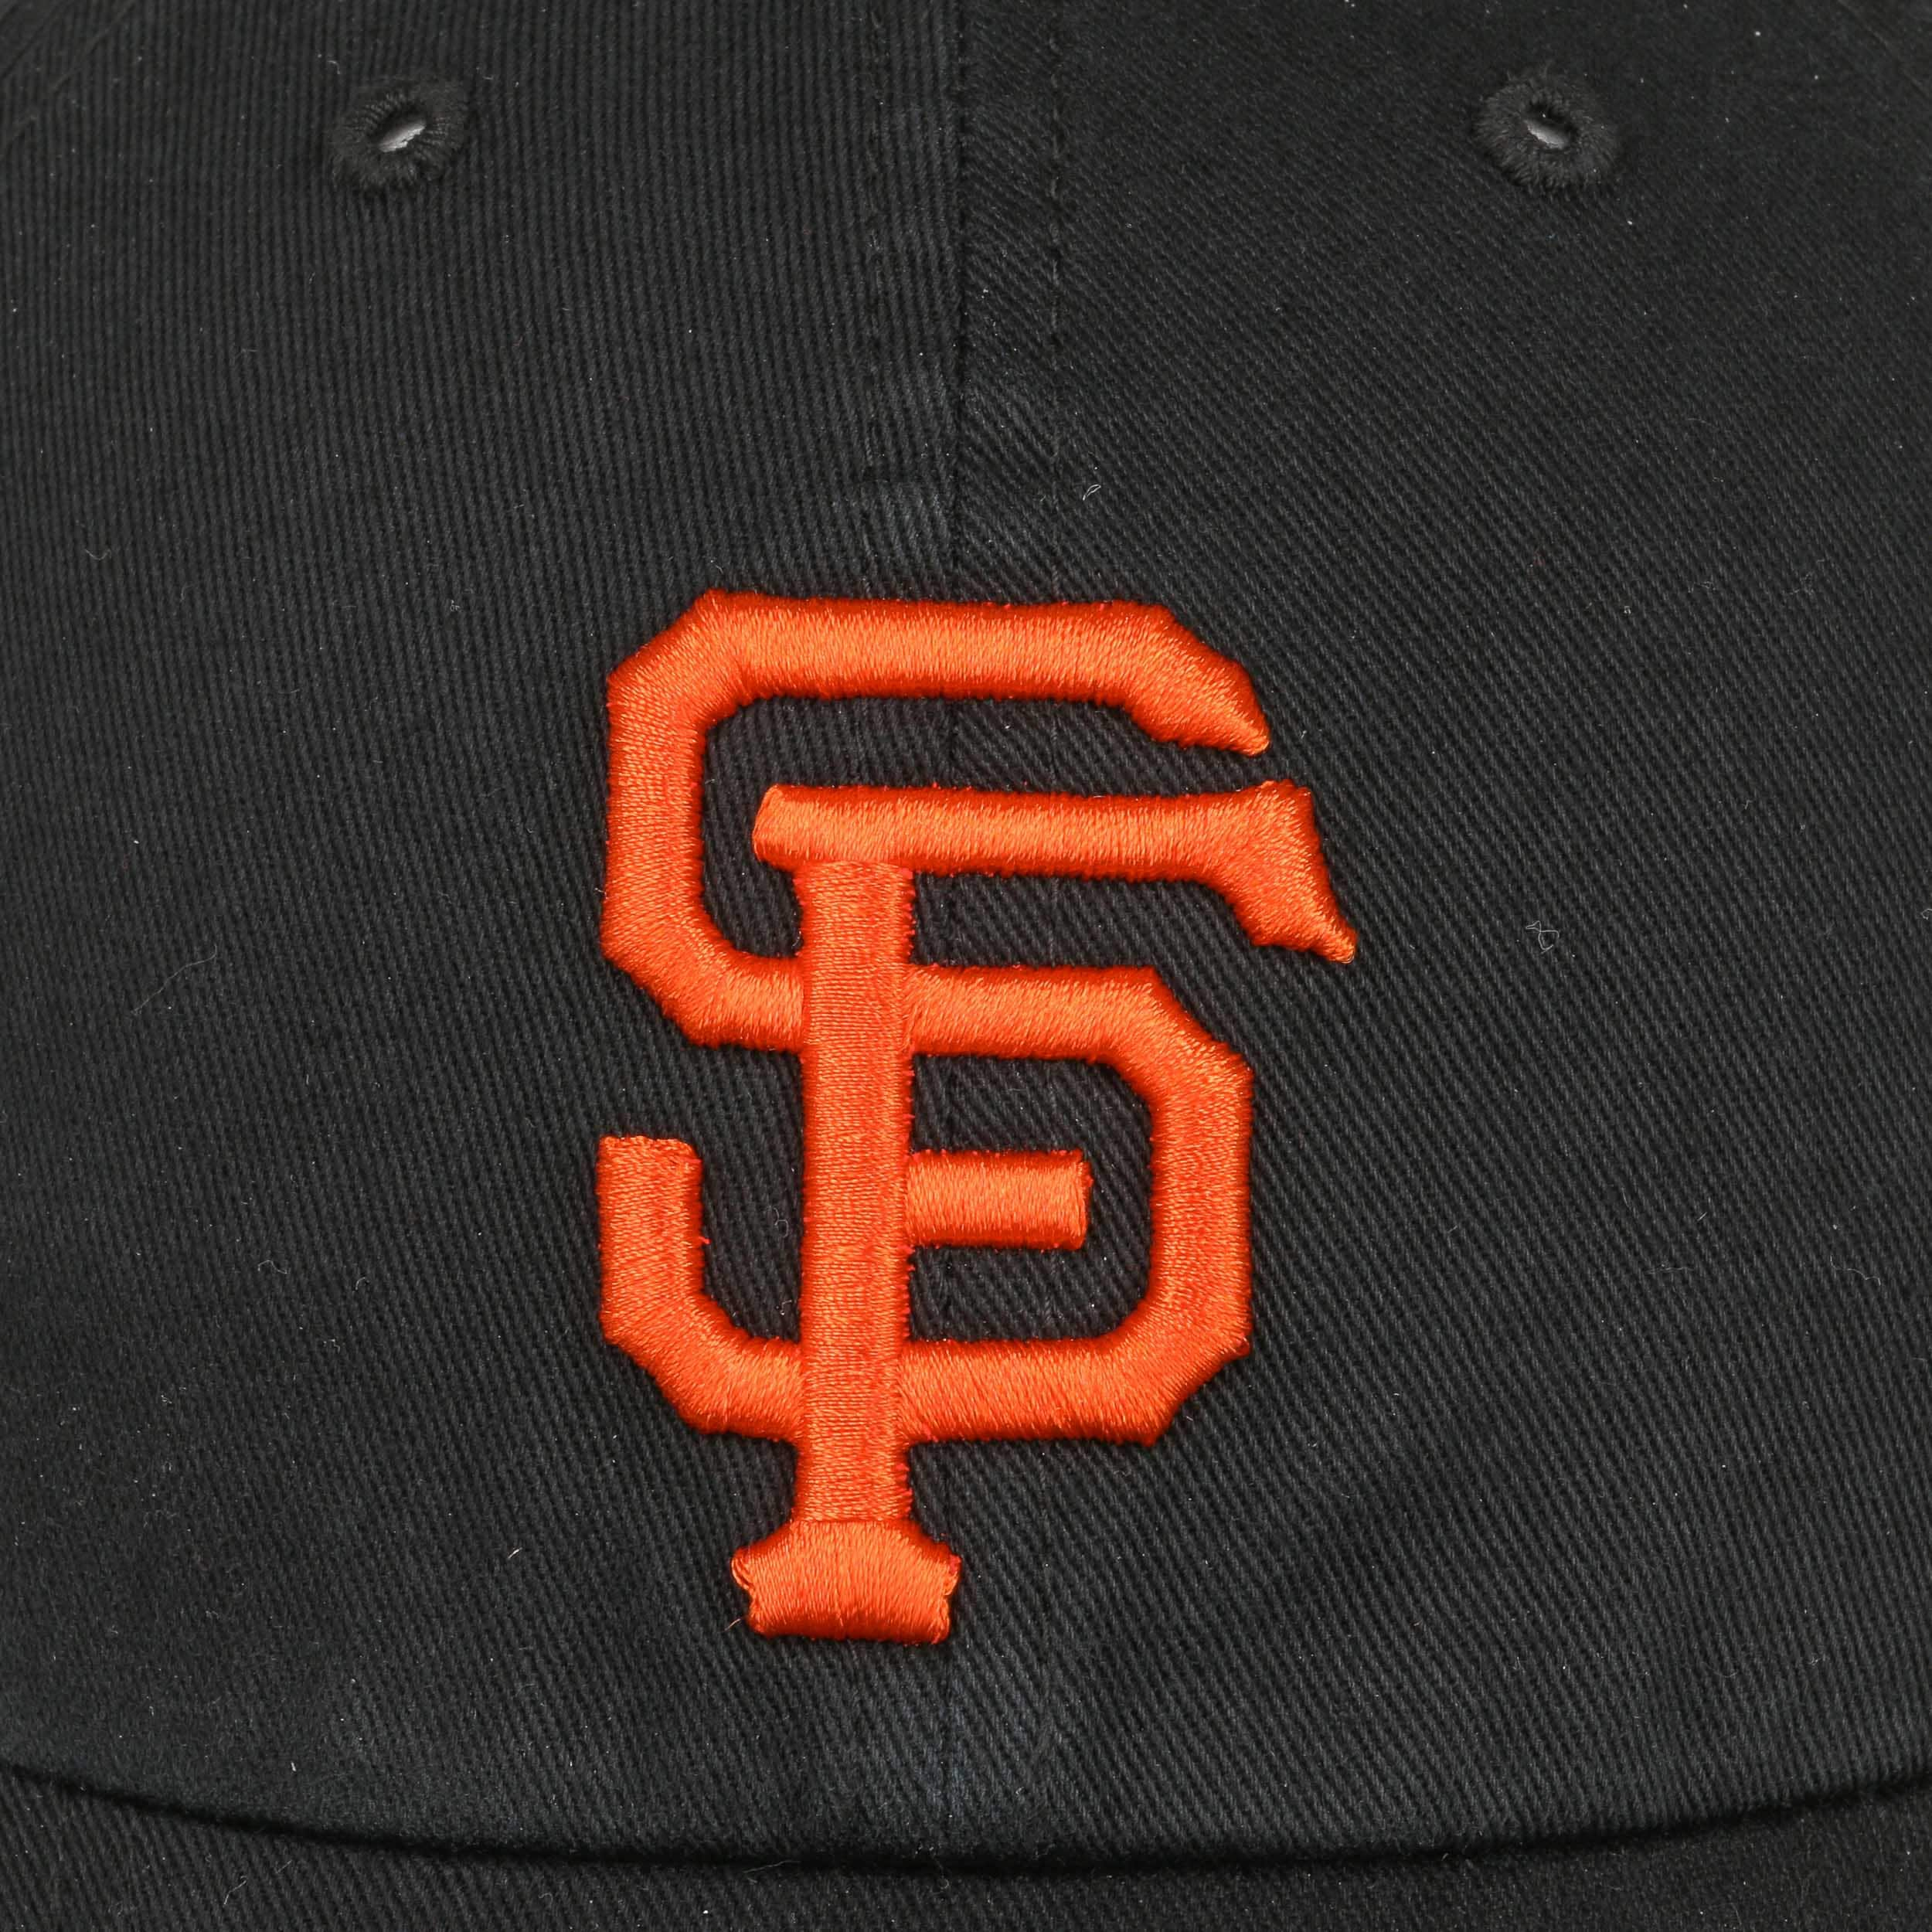 huge selection of 64d79 5afd9 ... gray osfa 67f0a ef1e5  closeout adjustable hat http cleanup sf giants  cap by 47 brand 4 82436 31049